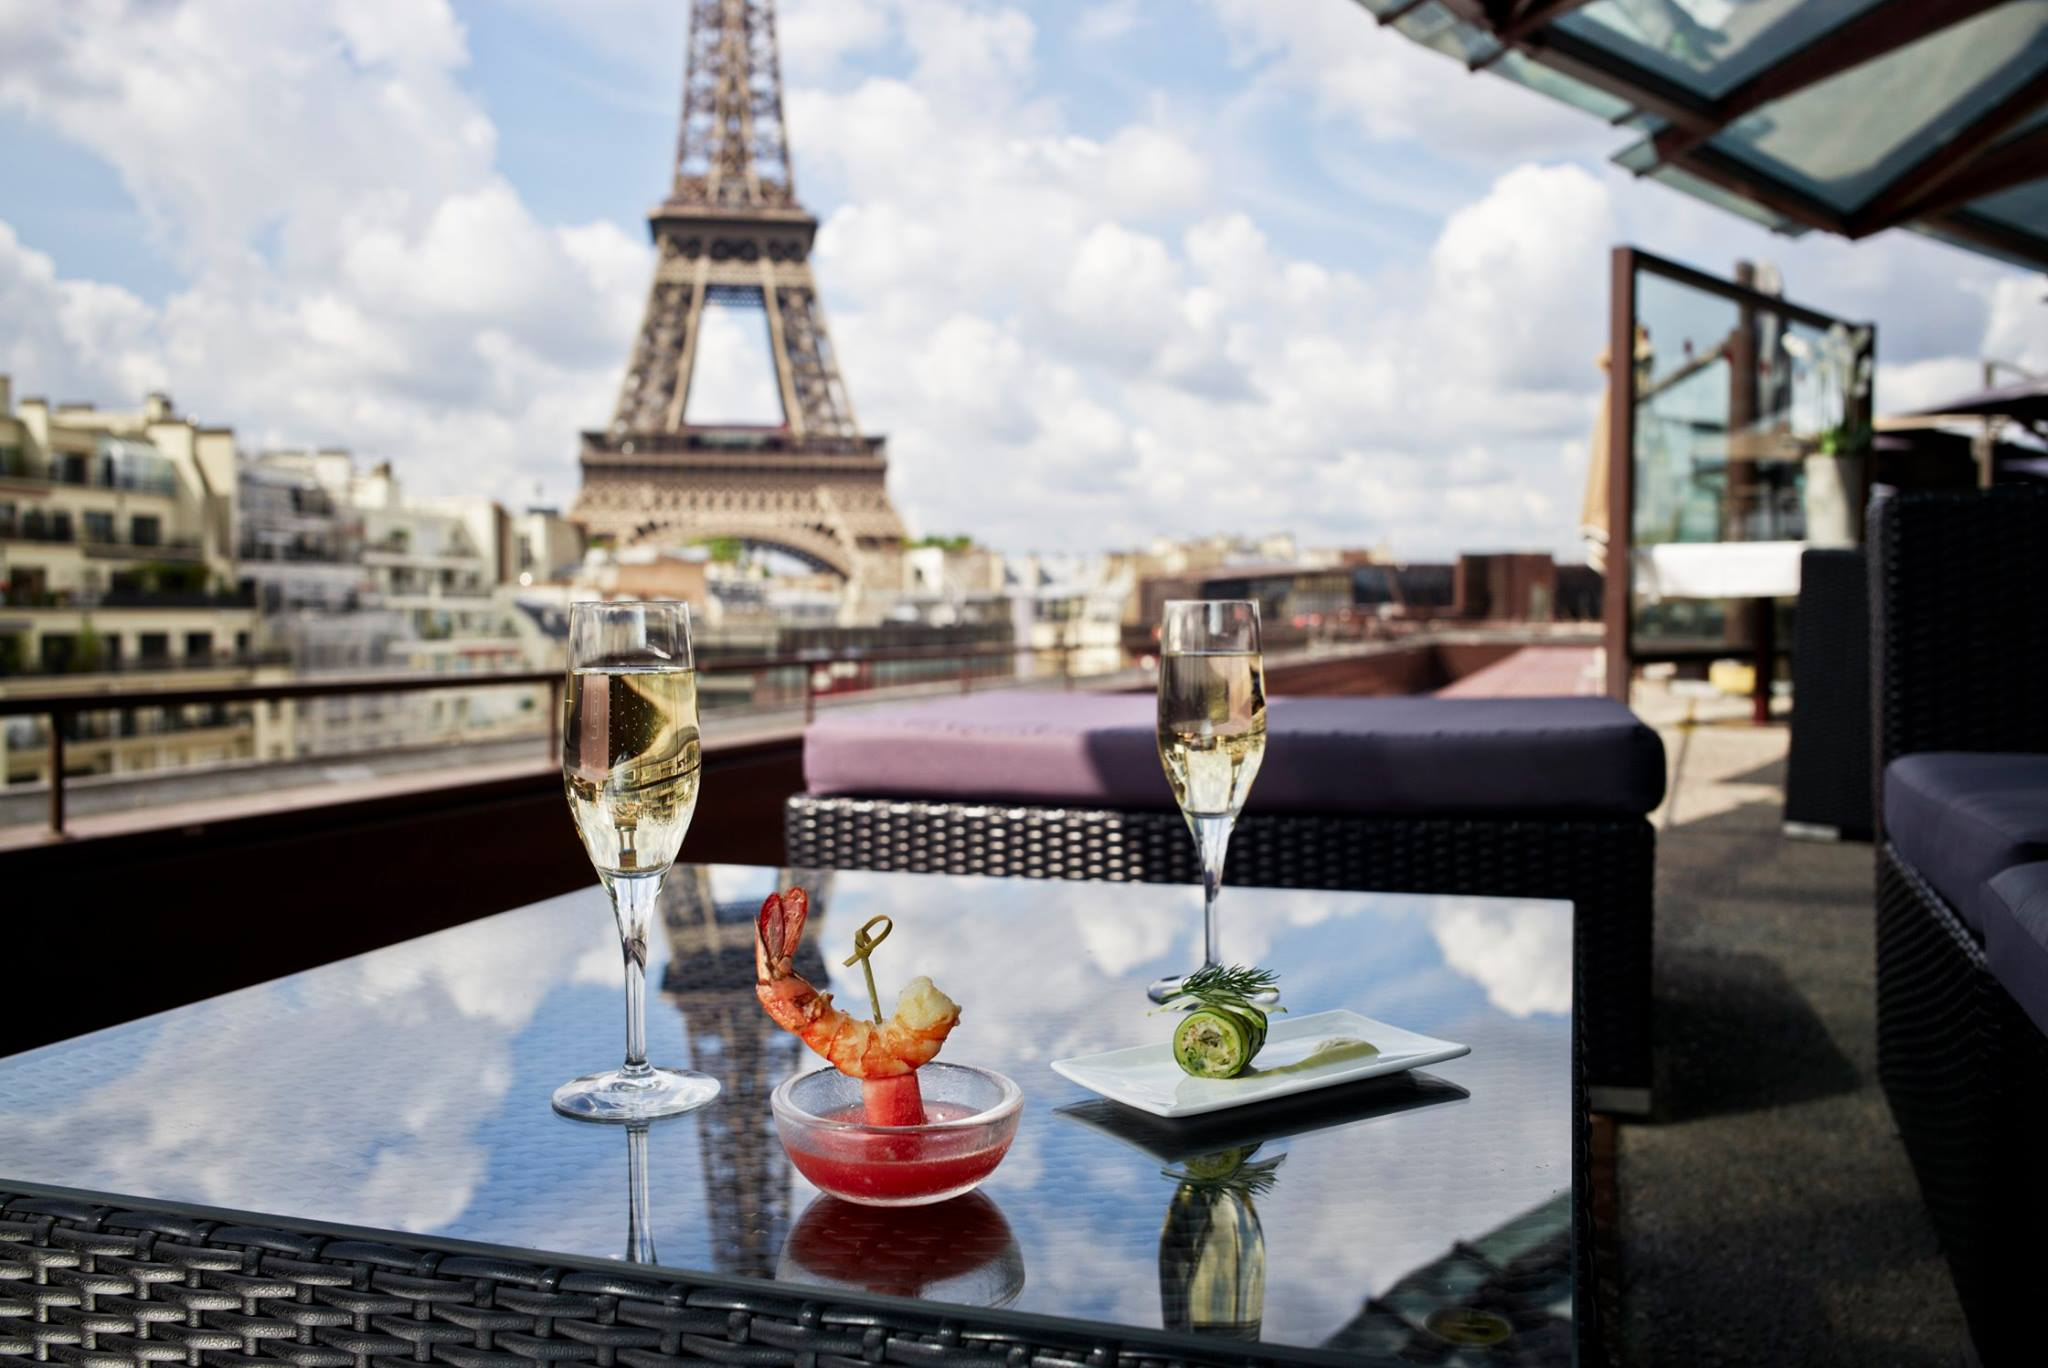 Les Ombres restaurant ParisRestaurants with View of Eiffel Tower #1 - Les Ombres